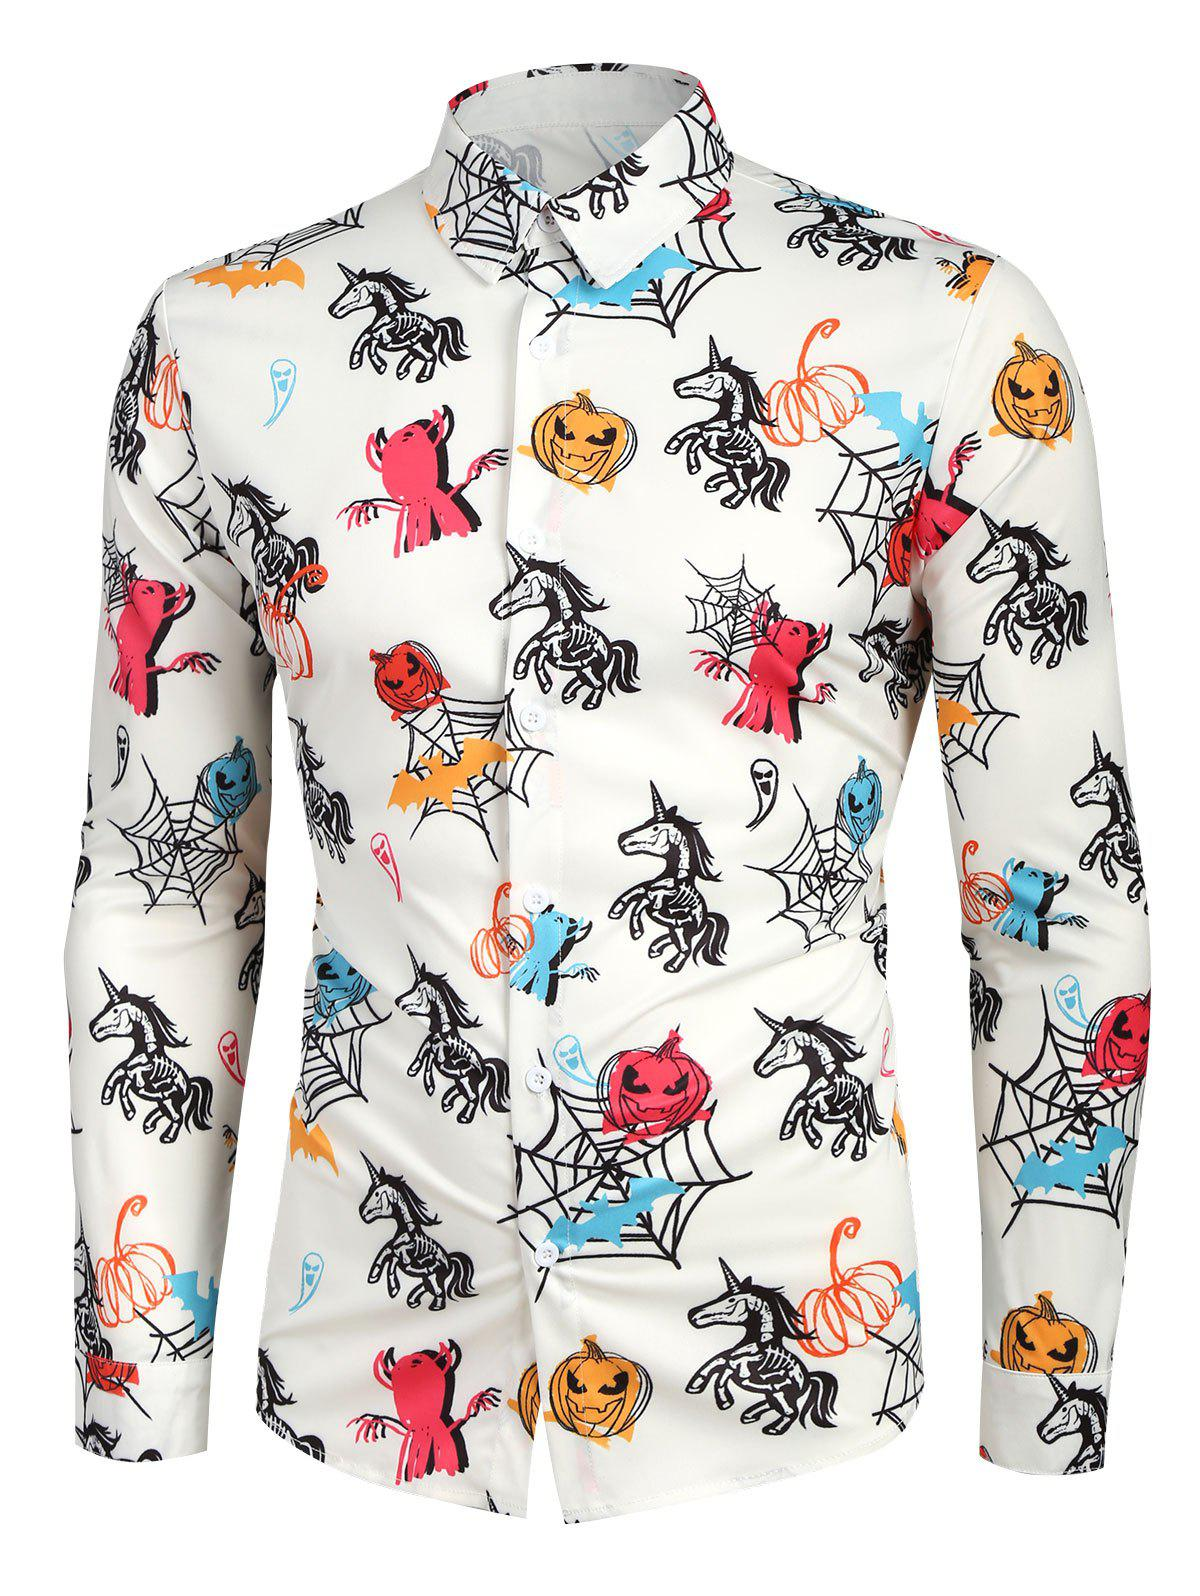 Hot Animal Printed Casual Long Sleeves Shirt